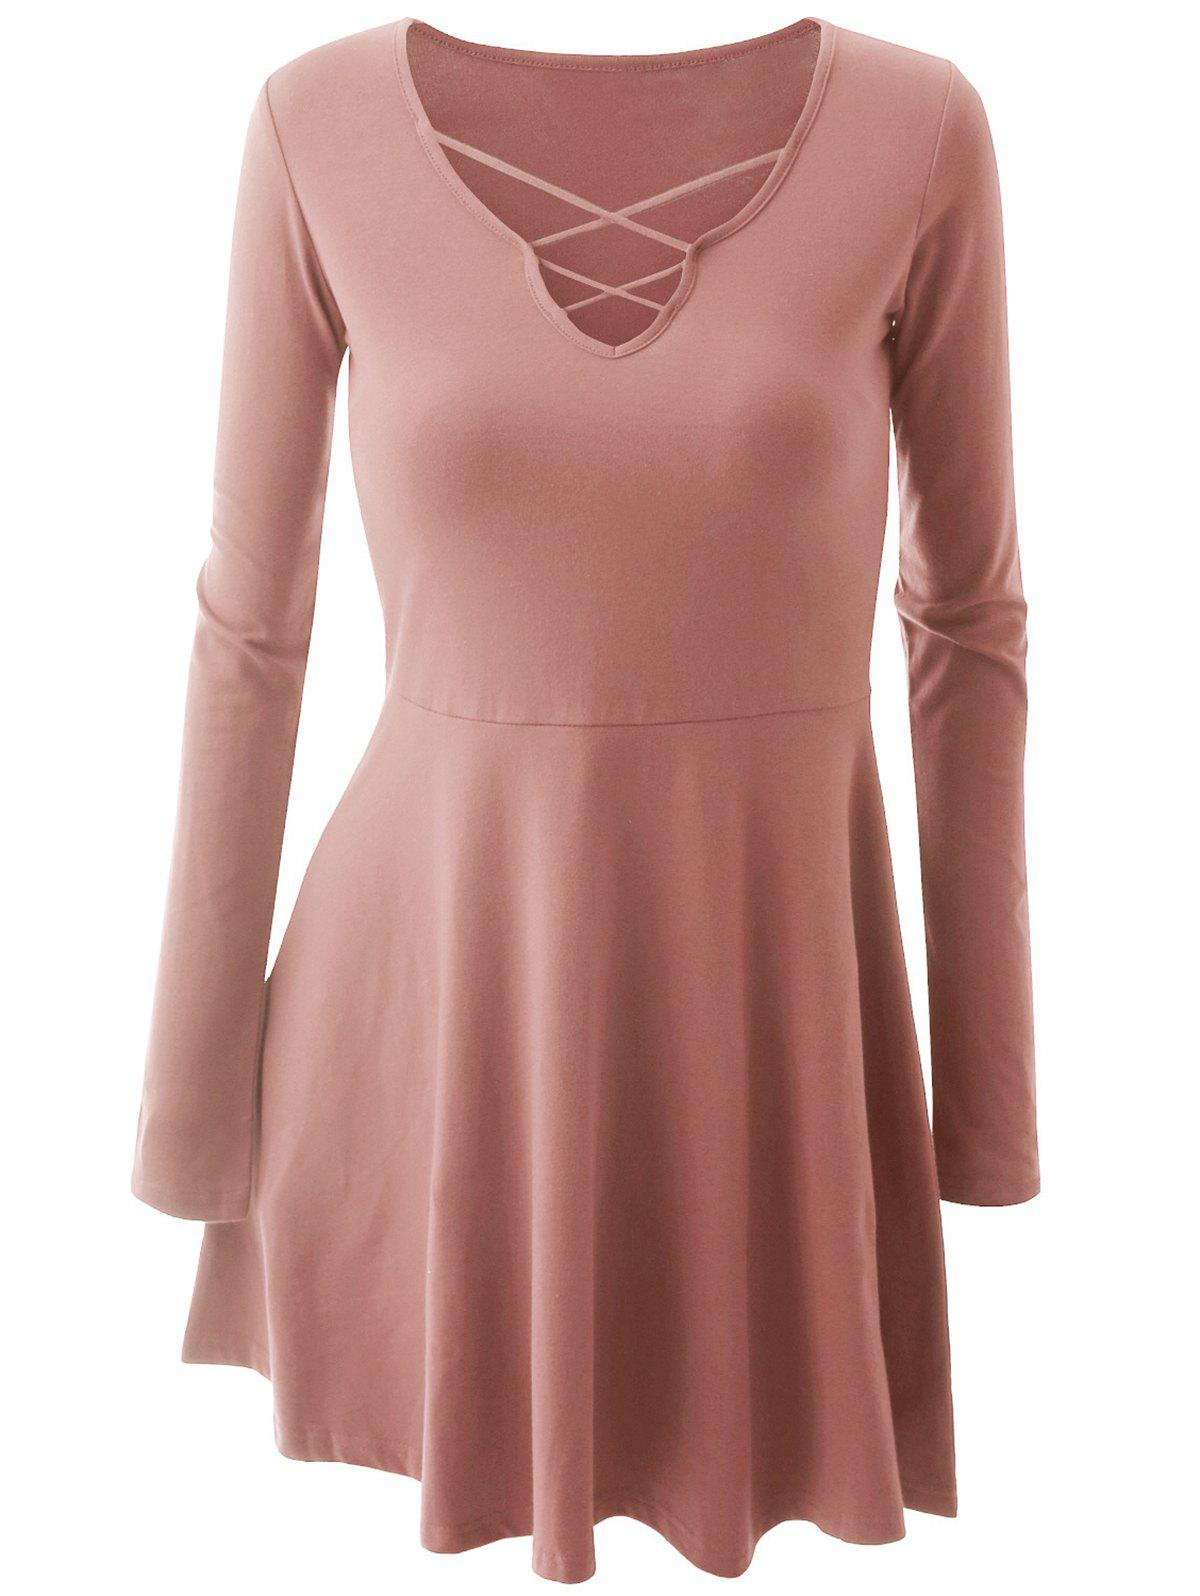 Shop Long Sleeve Criss-cross Skater Dress